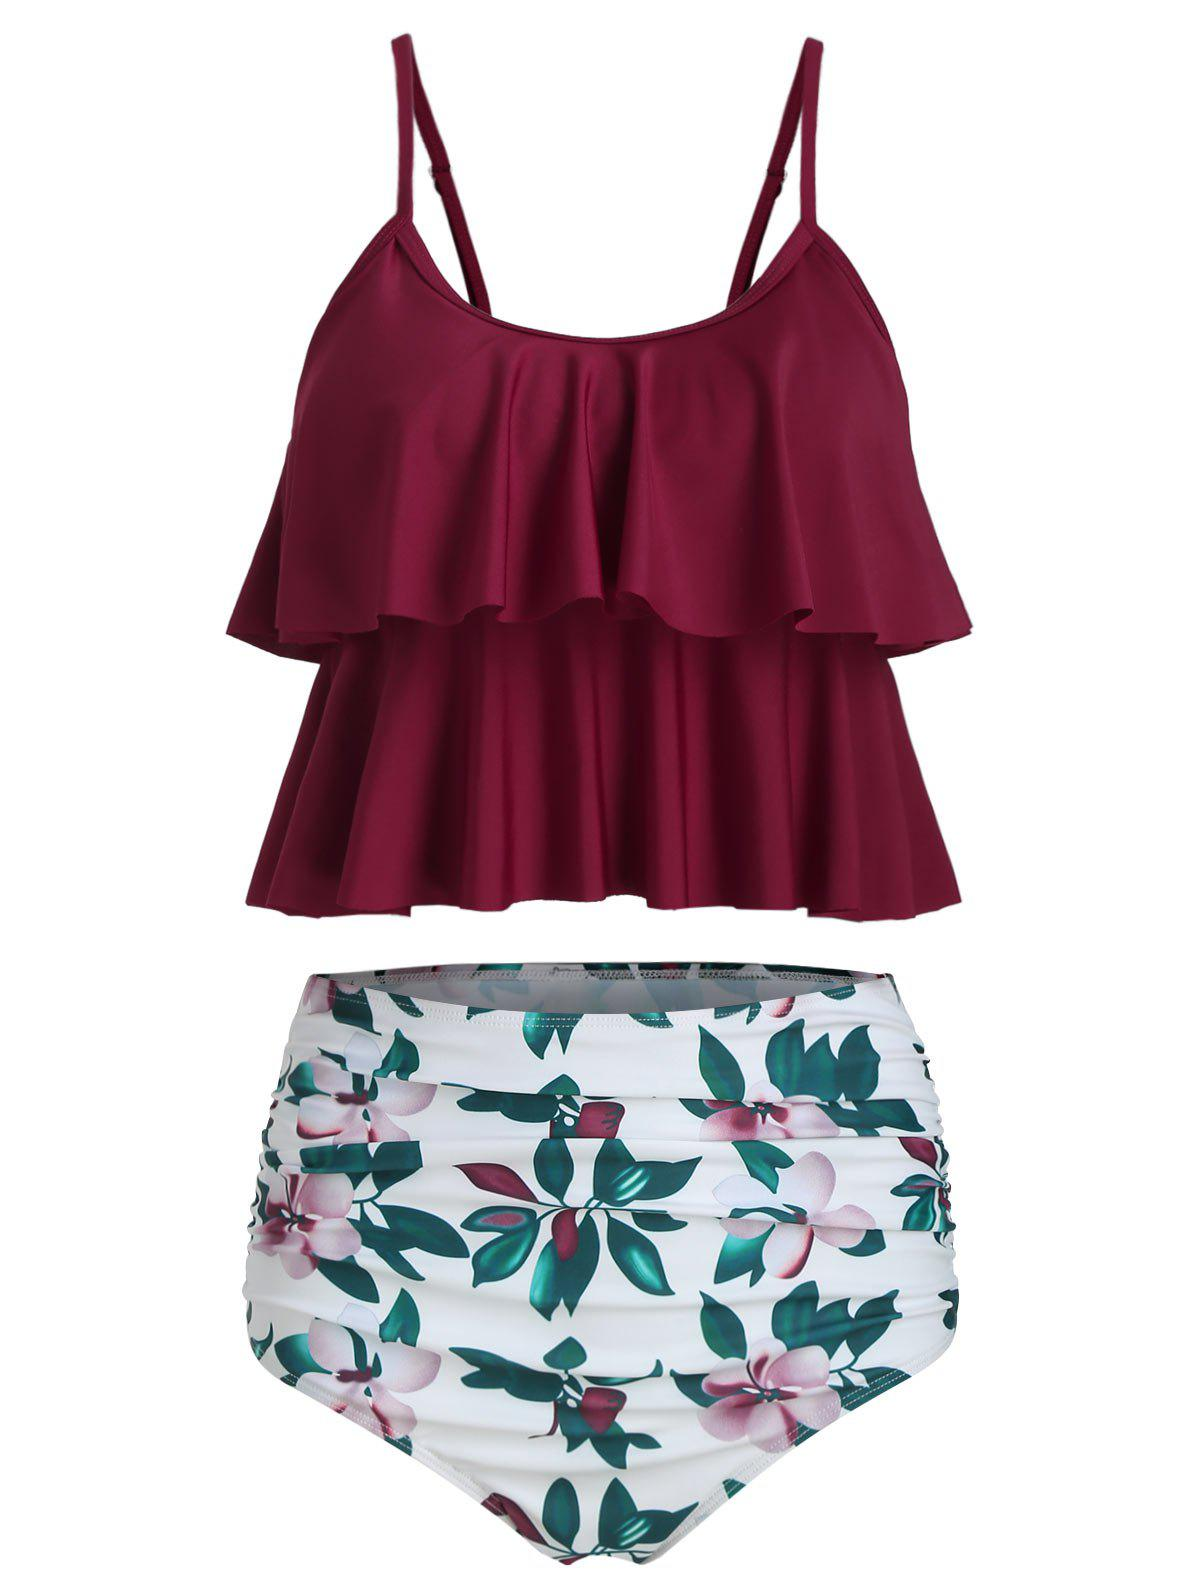 Ruched Floral Print Overlay Tankini Set - RED WINE S